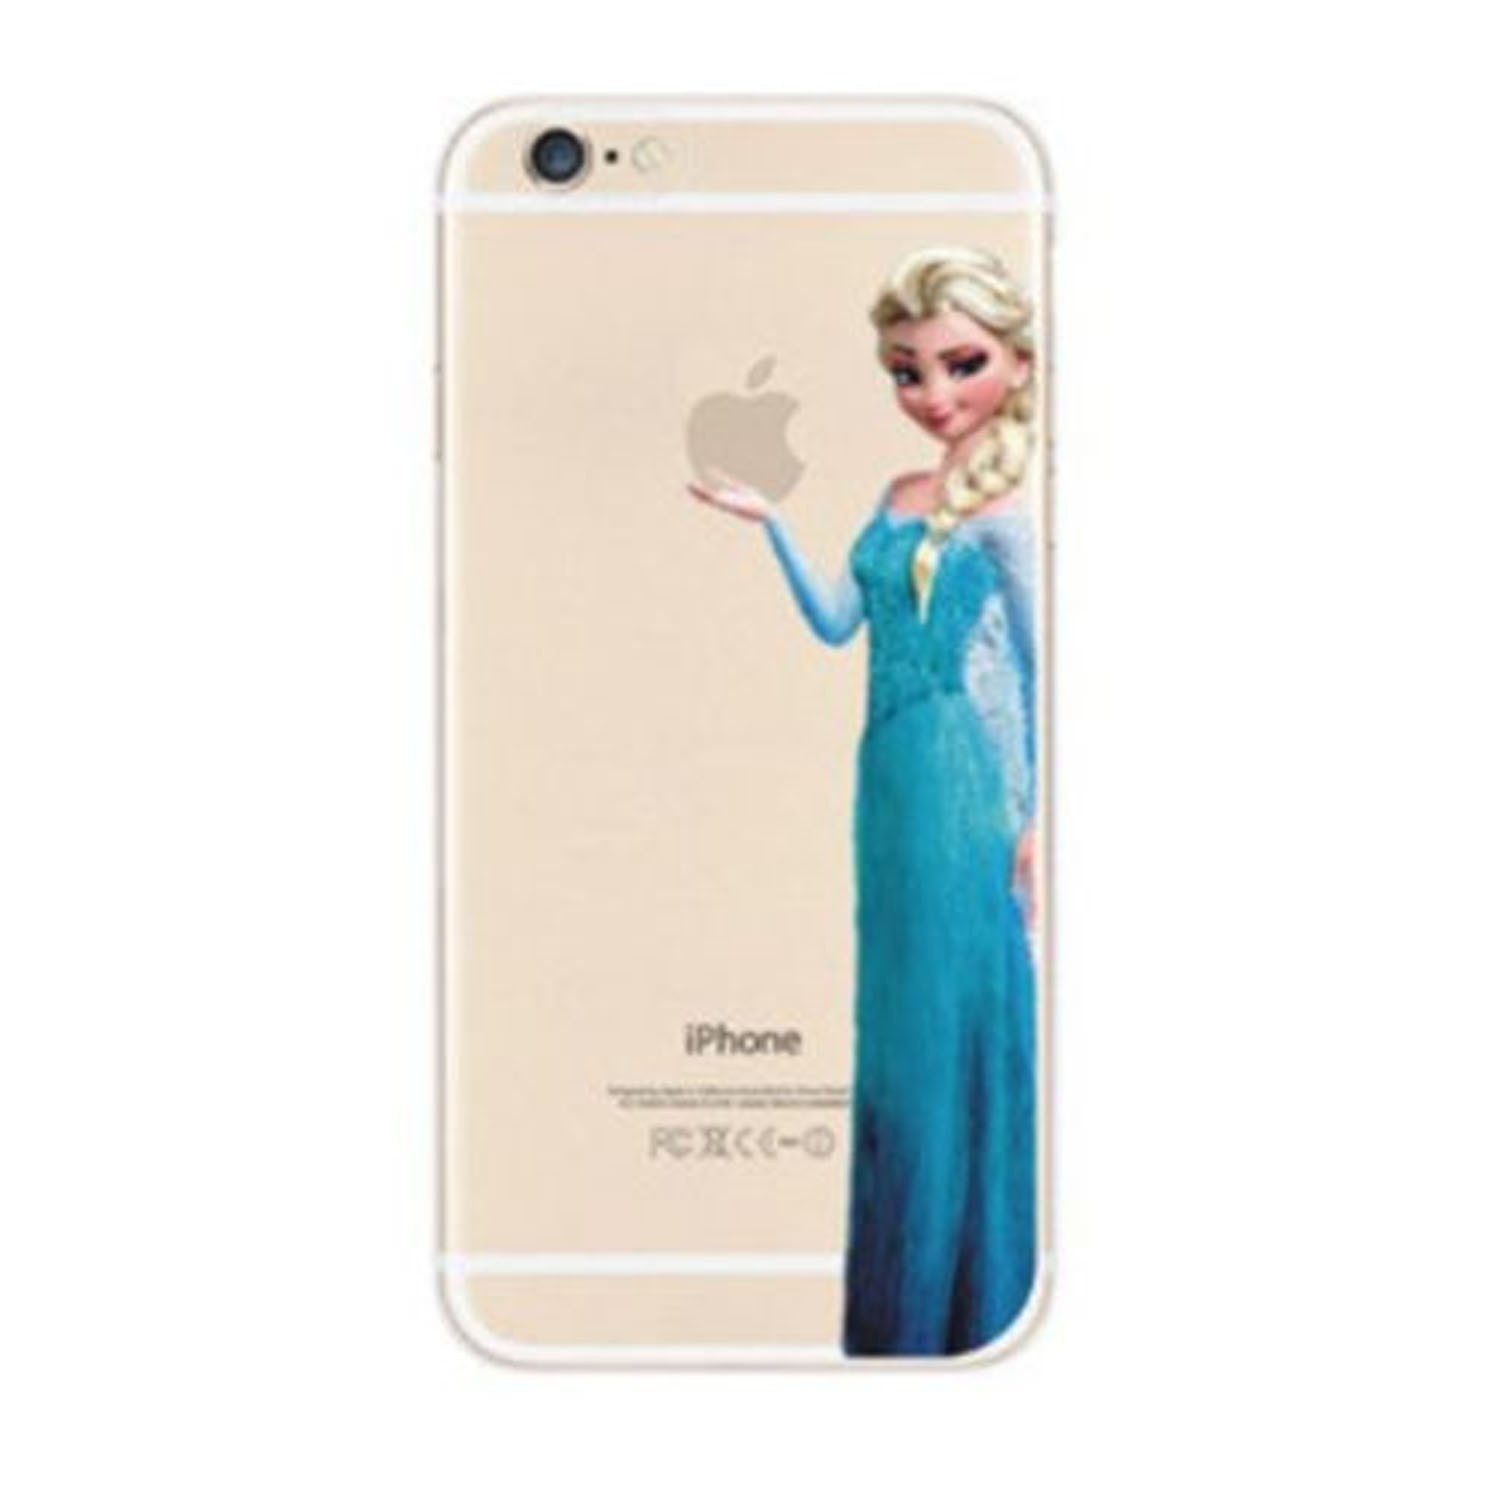 Kritzel Case iPhone 6 / 6s - Die Eiskönigin Elsa